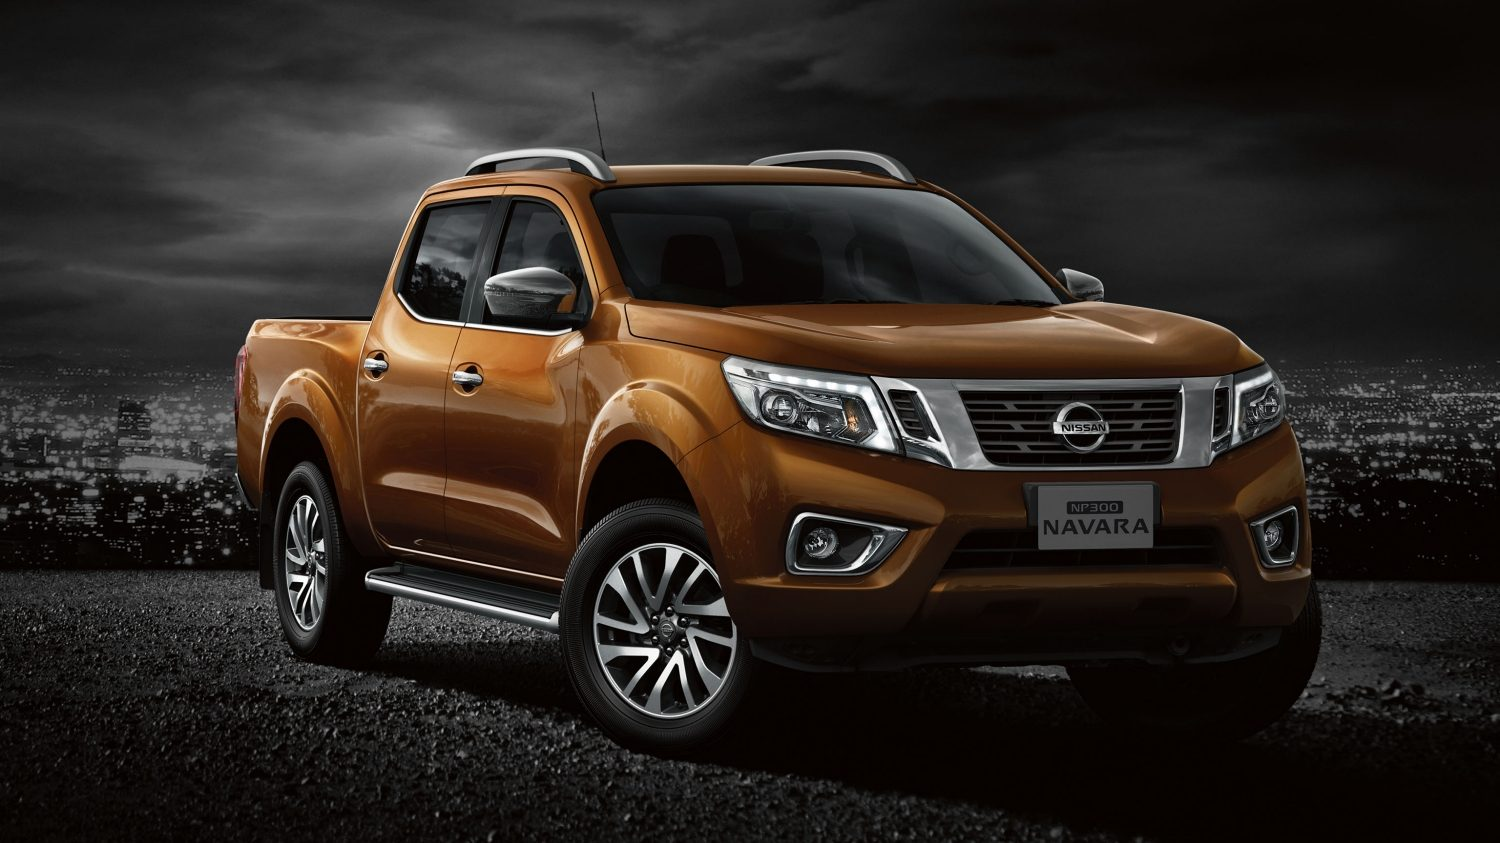 Nissan NP300 Navara: Reinventing the Workhors